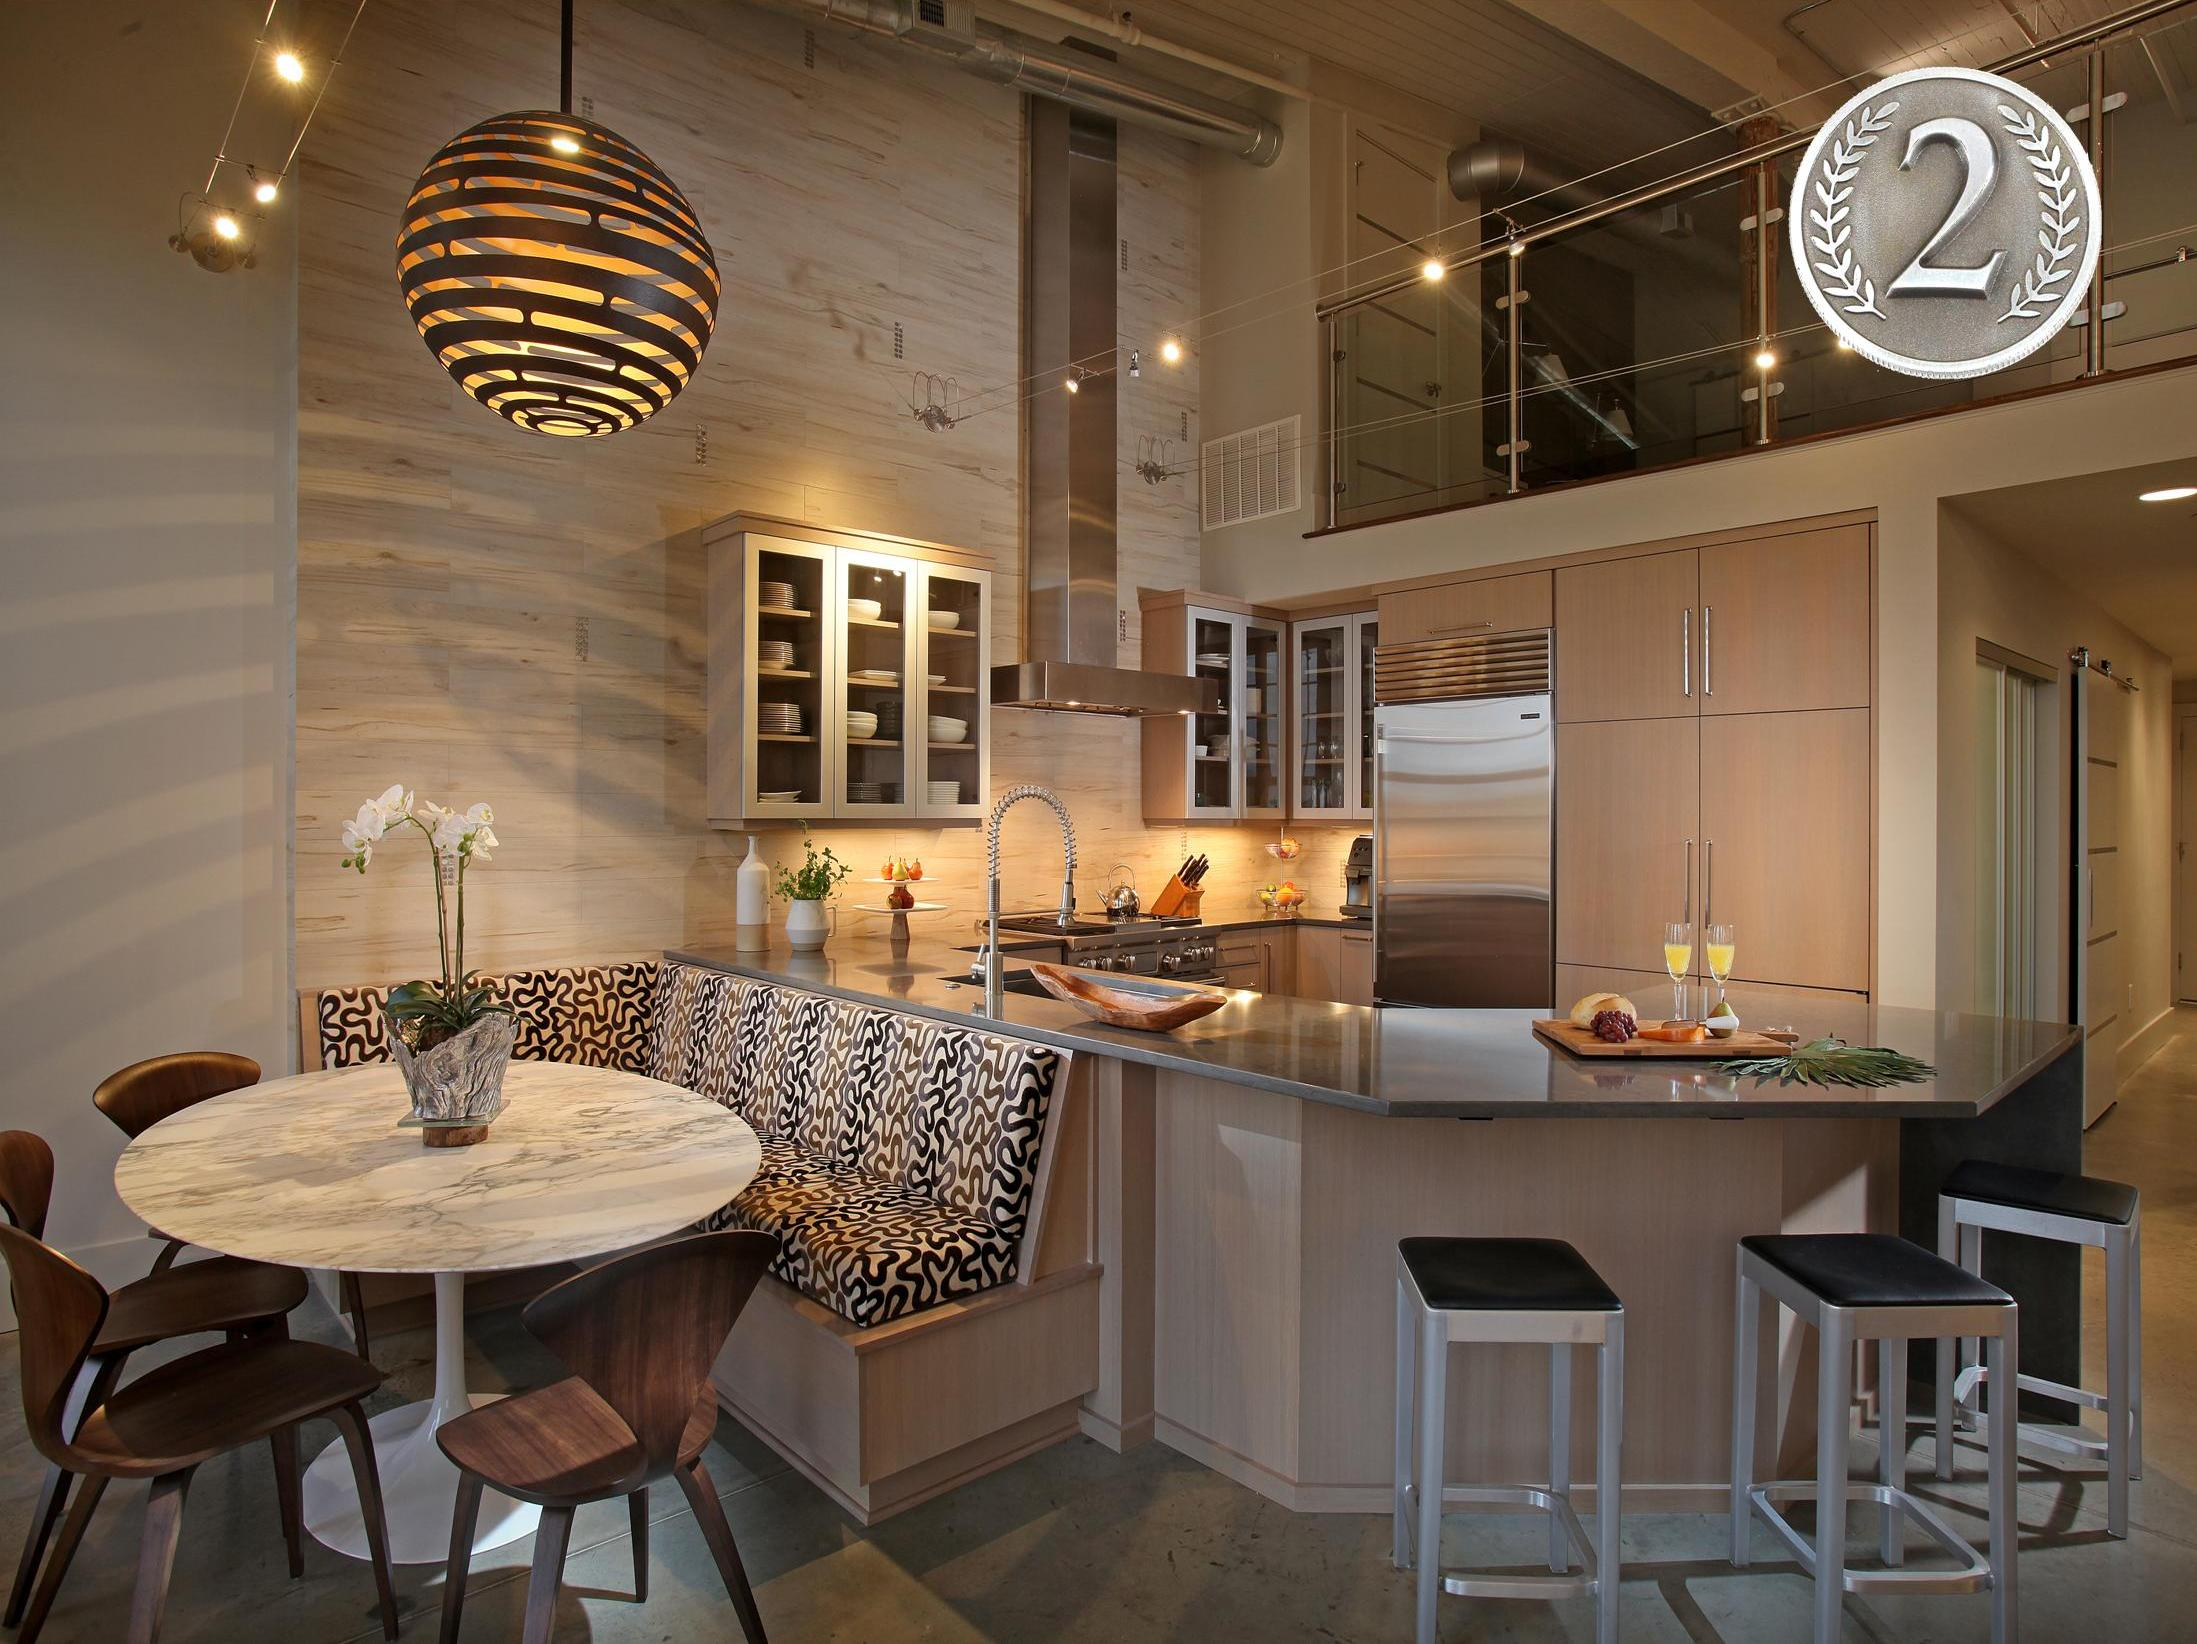 Awarded 2nd Place in Contemporary Kitchens -18th Annual Design Awards